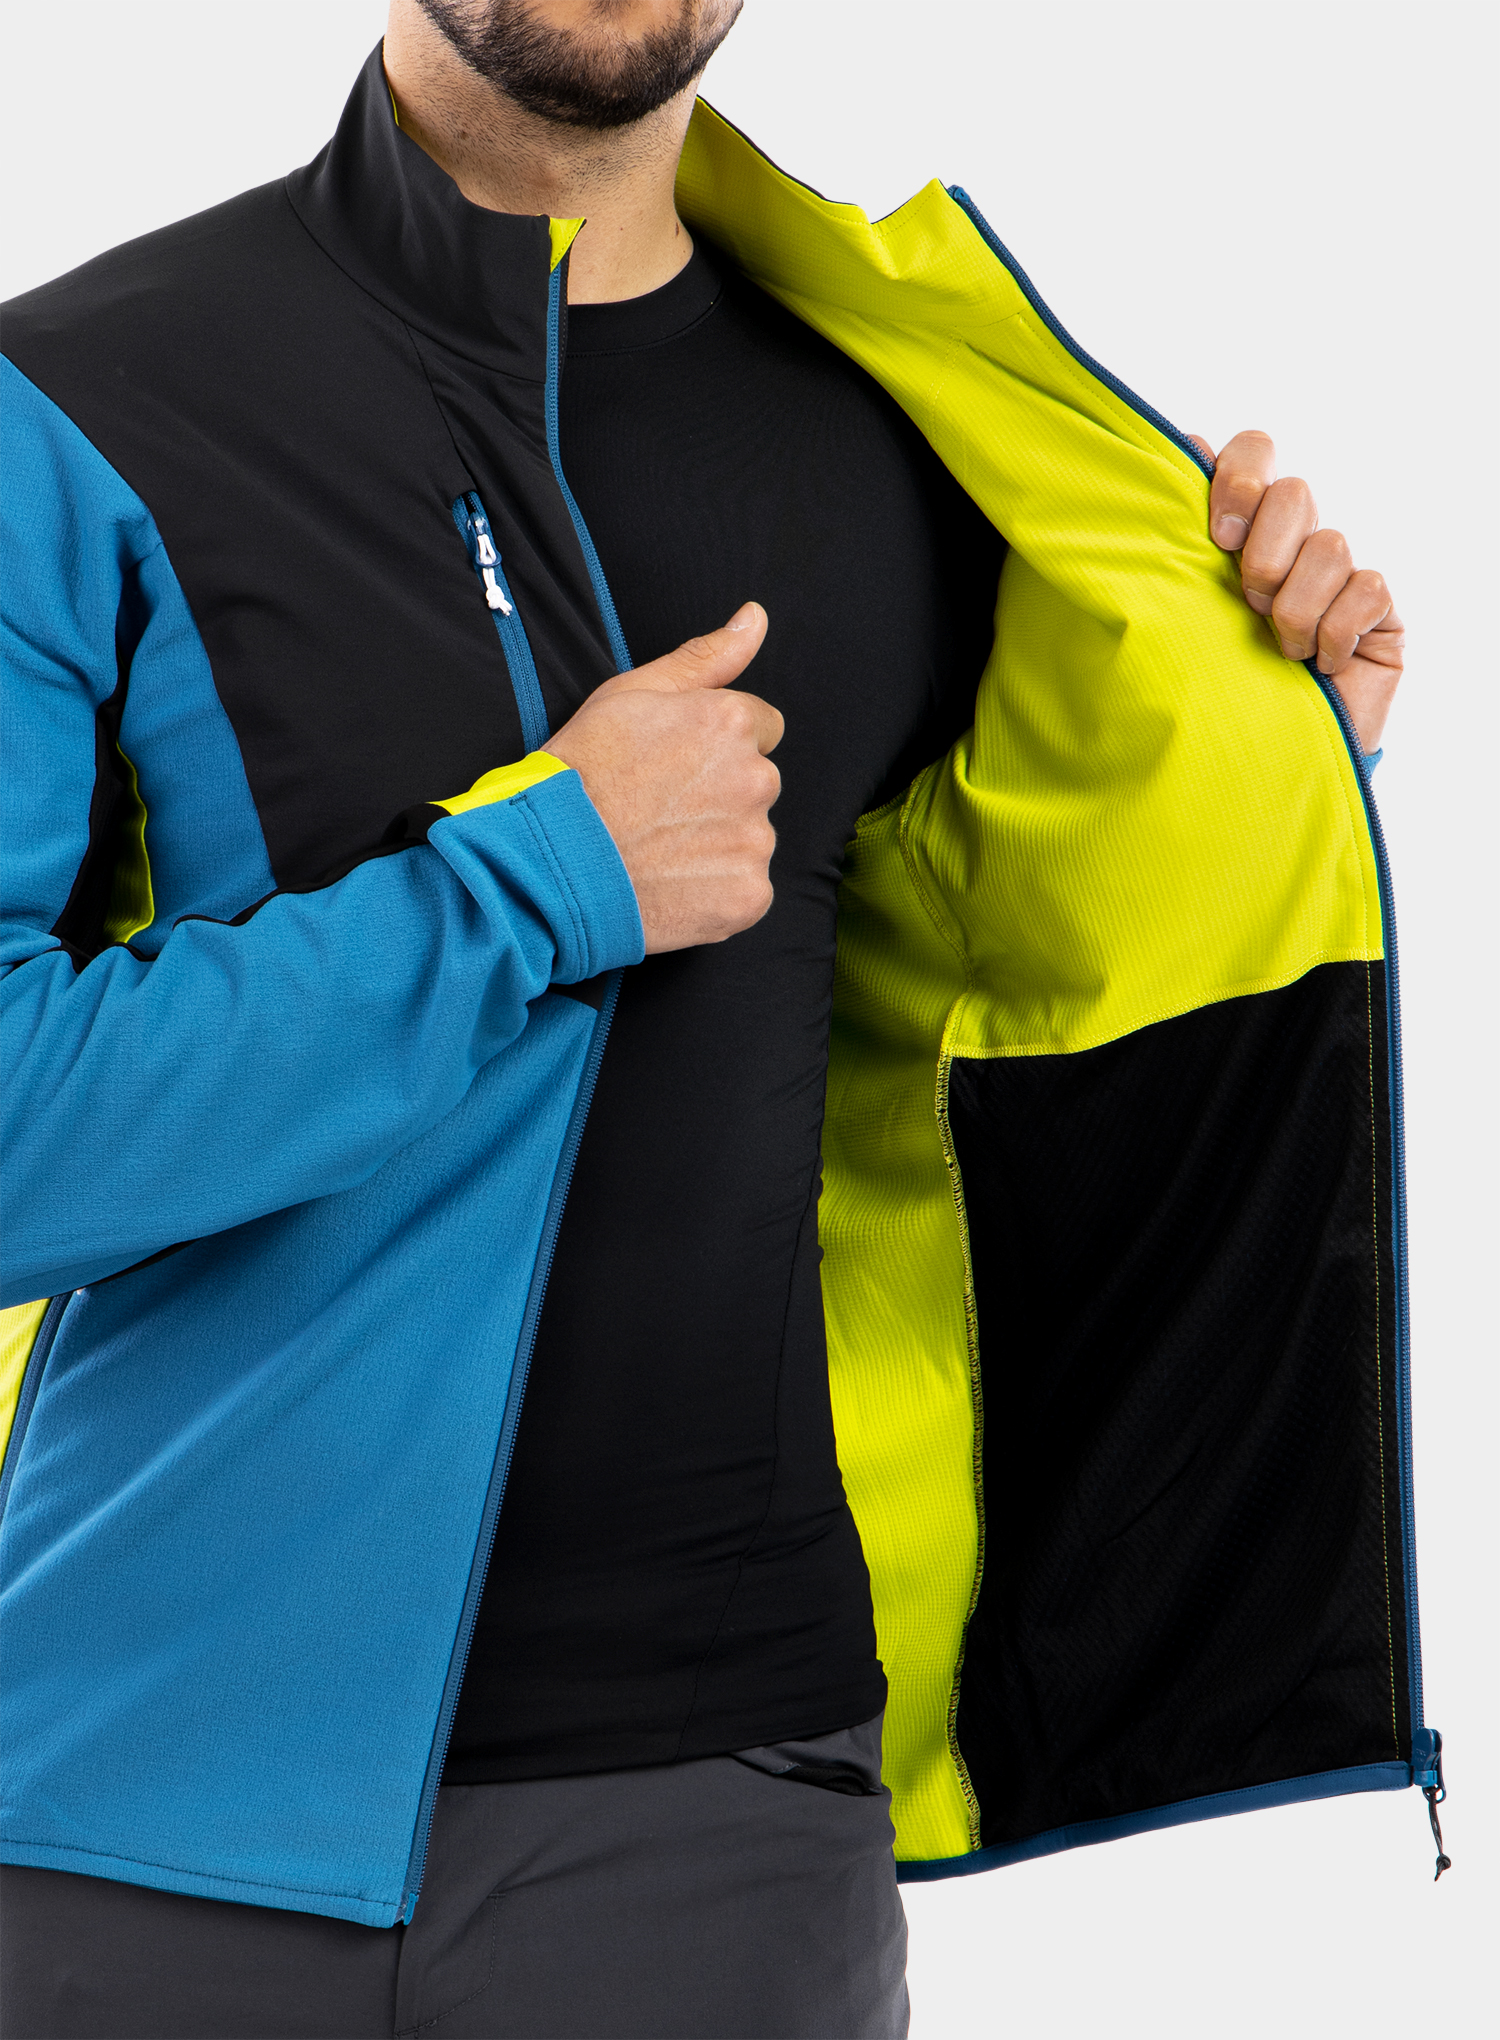 Bluza Montura Stretch Pro 2.0 Jacket - teal blue/lime green - zdjęcie nr. 6